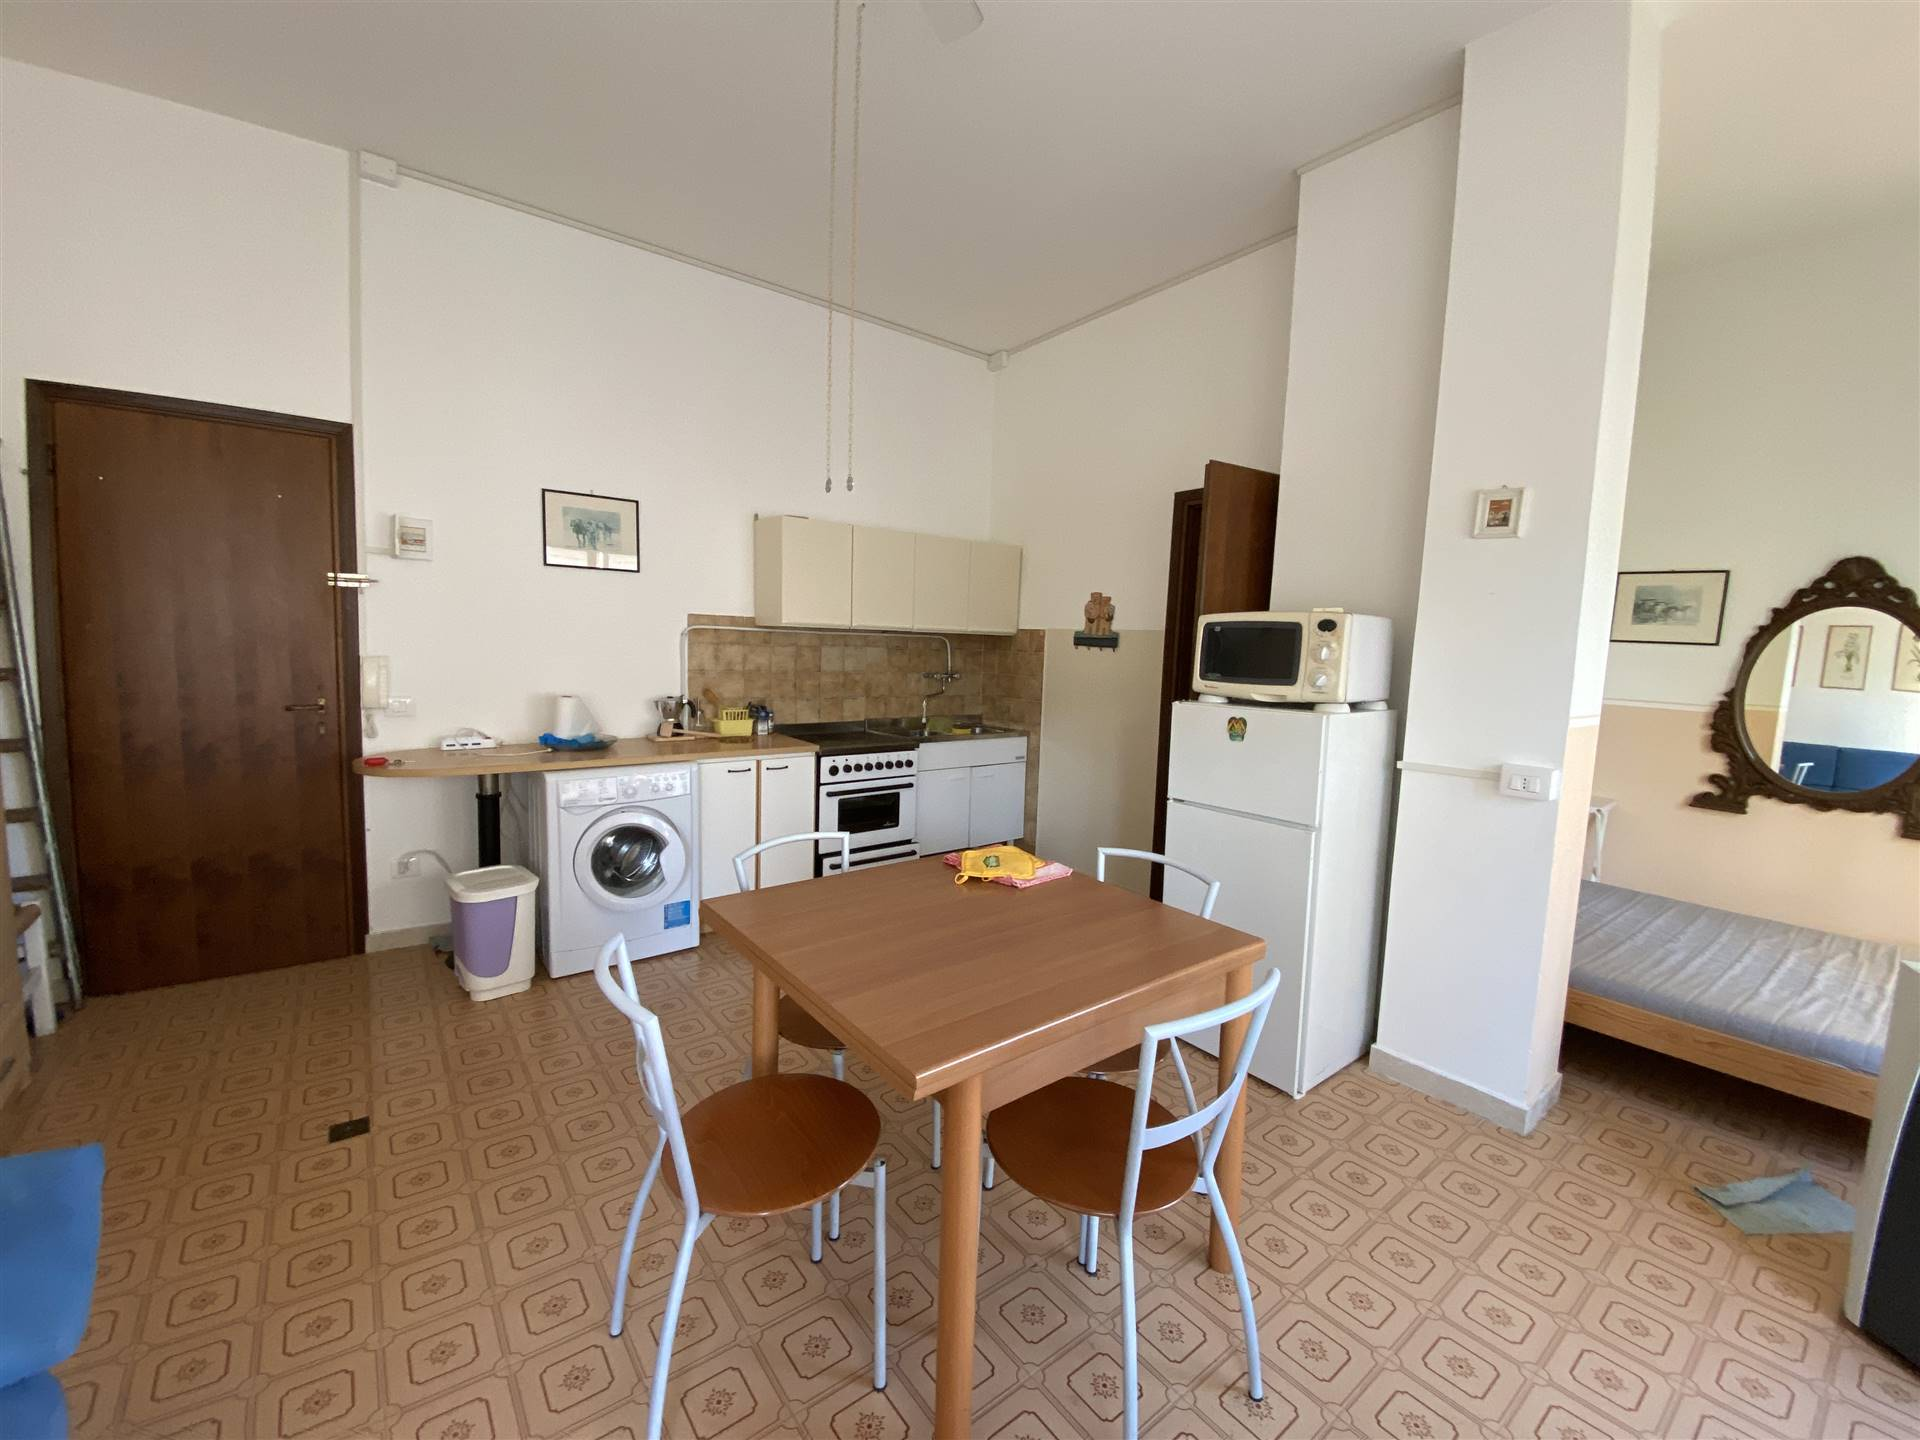 ISOLA VERDE, CHIOGGIA, Apartment for sale of 24 Sq. mt., Habitable, Energetic class: G, placed at 1°, composed by: 1 Room, Show cooking, 1 Bathroom,